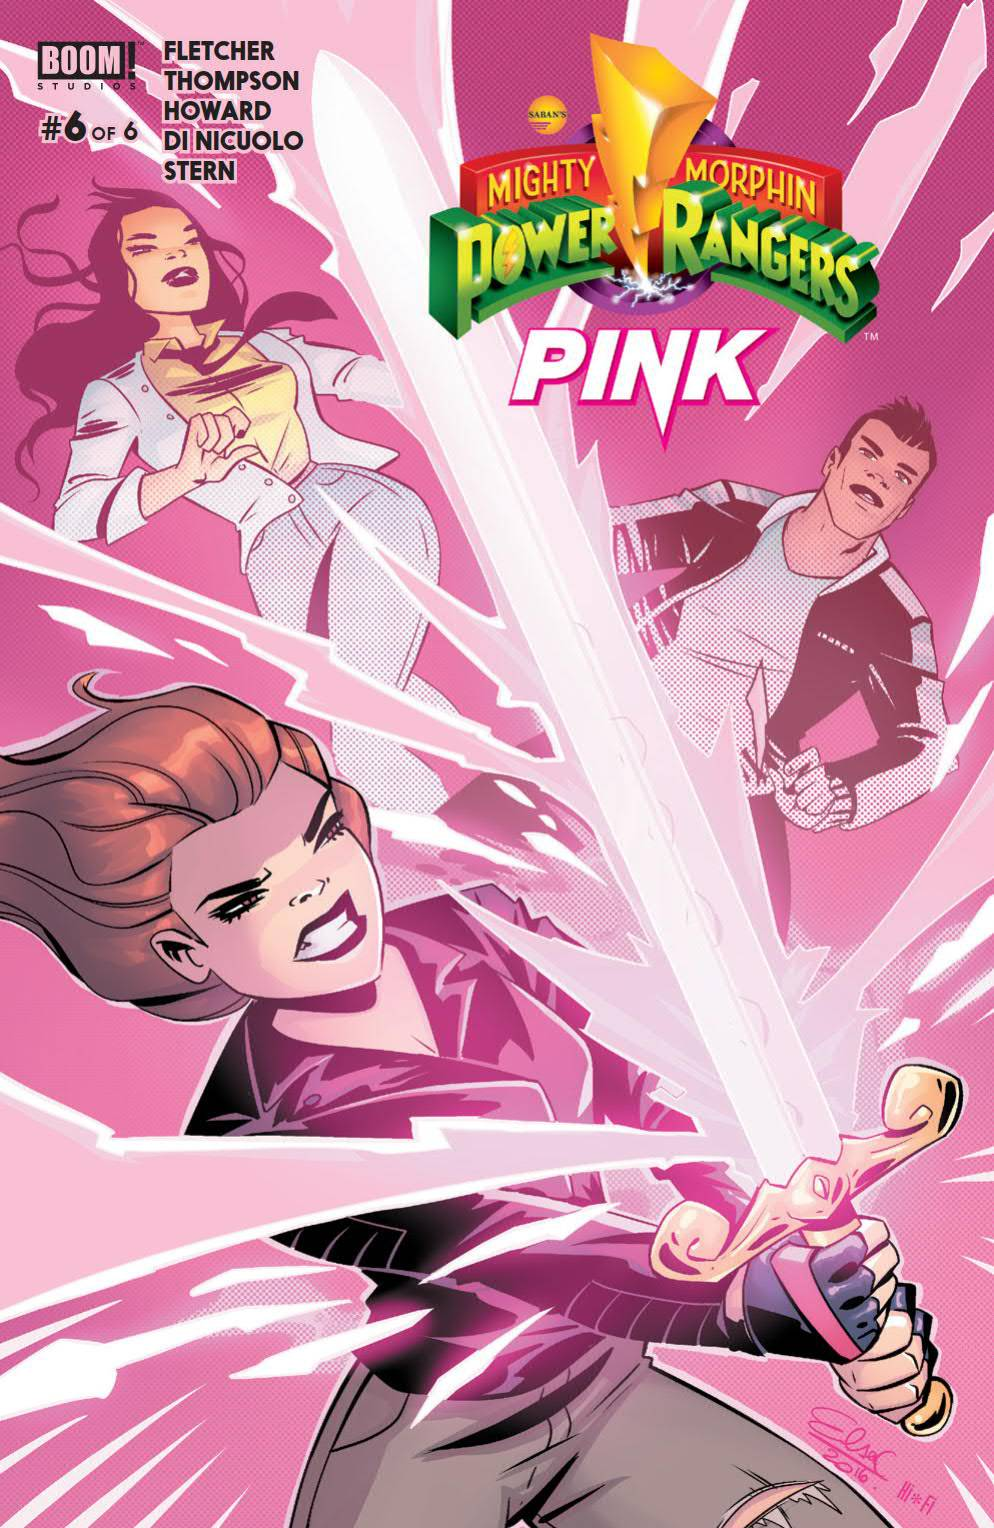 POWER RANGERS PINK #6